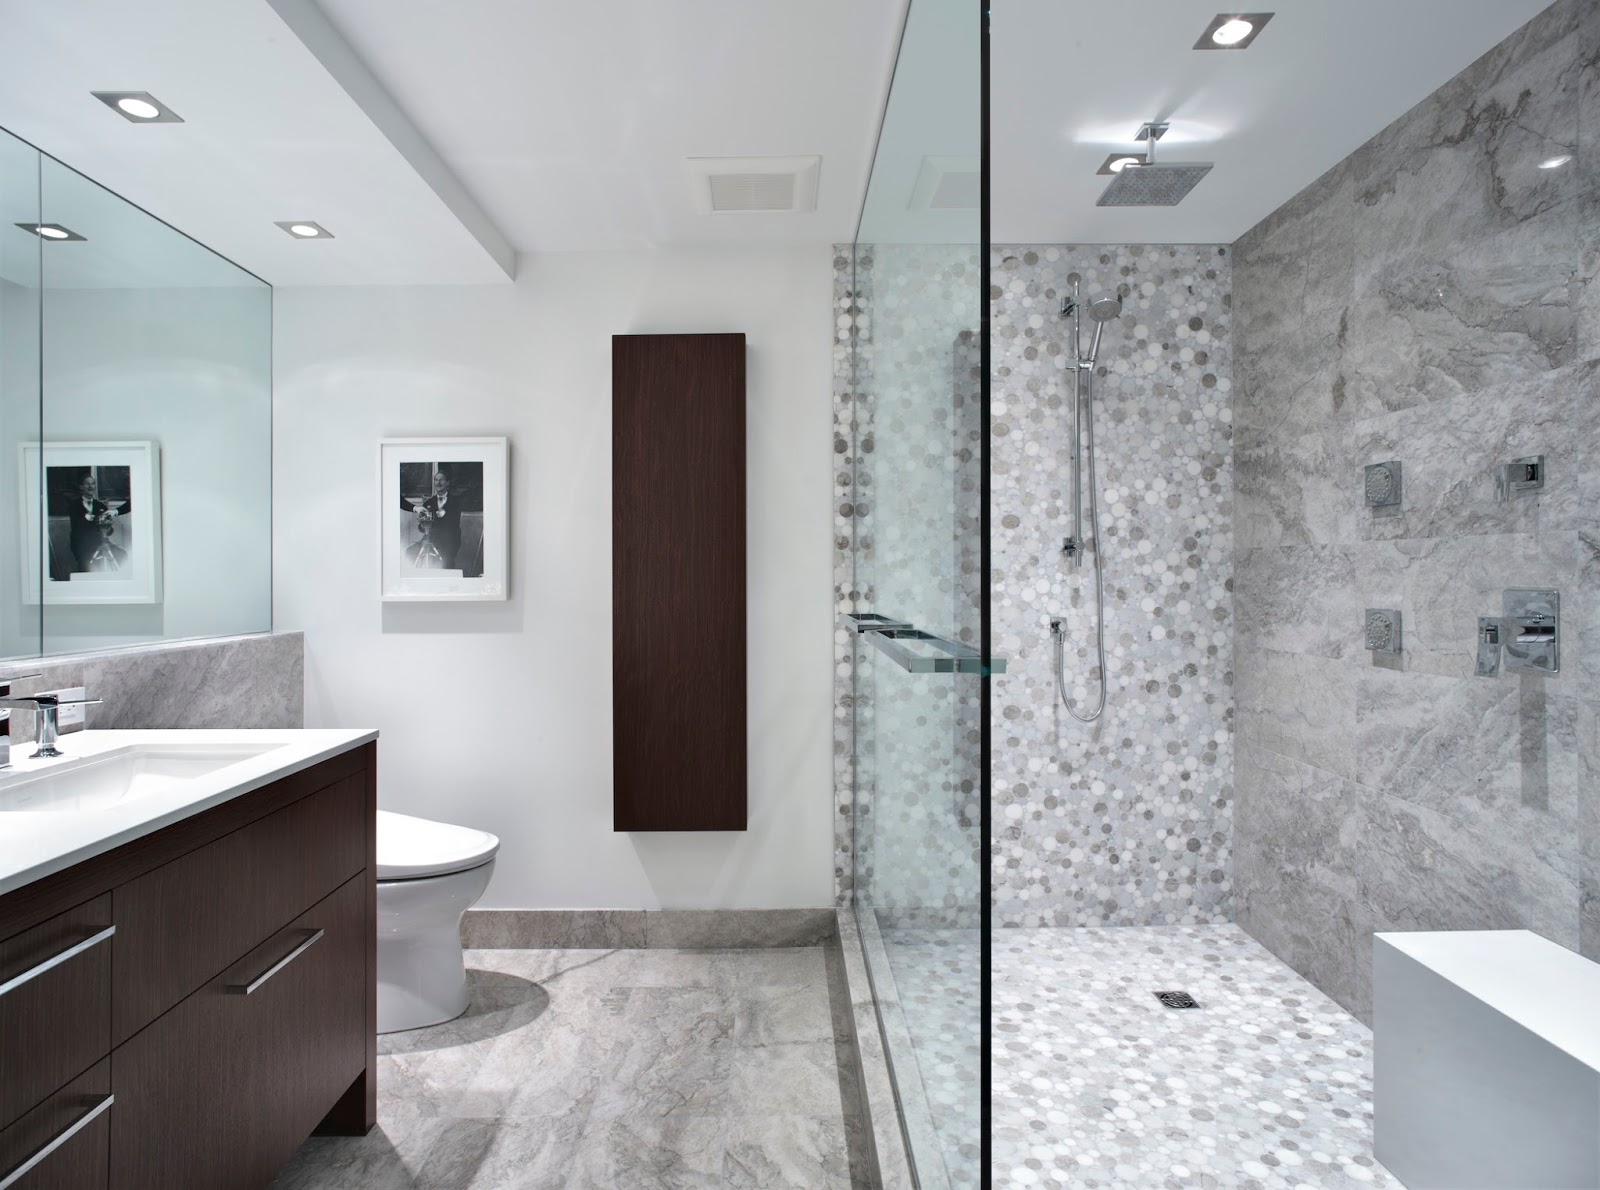 Patricia gray interior design blog 1st place 39 best for Ensuite bathroom renovation ideas